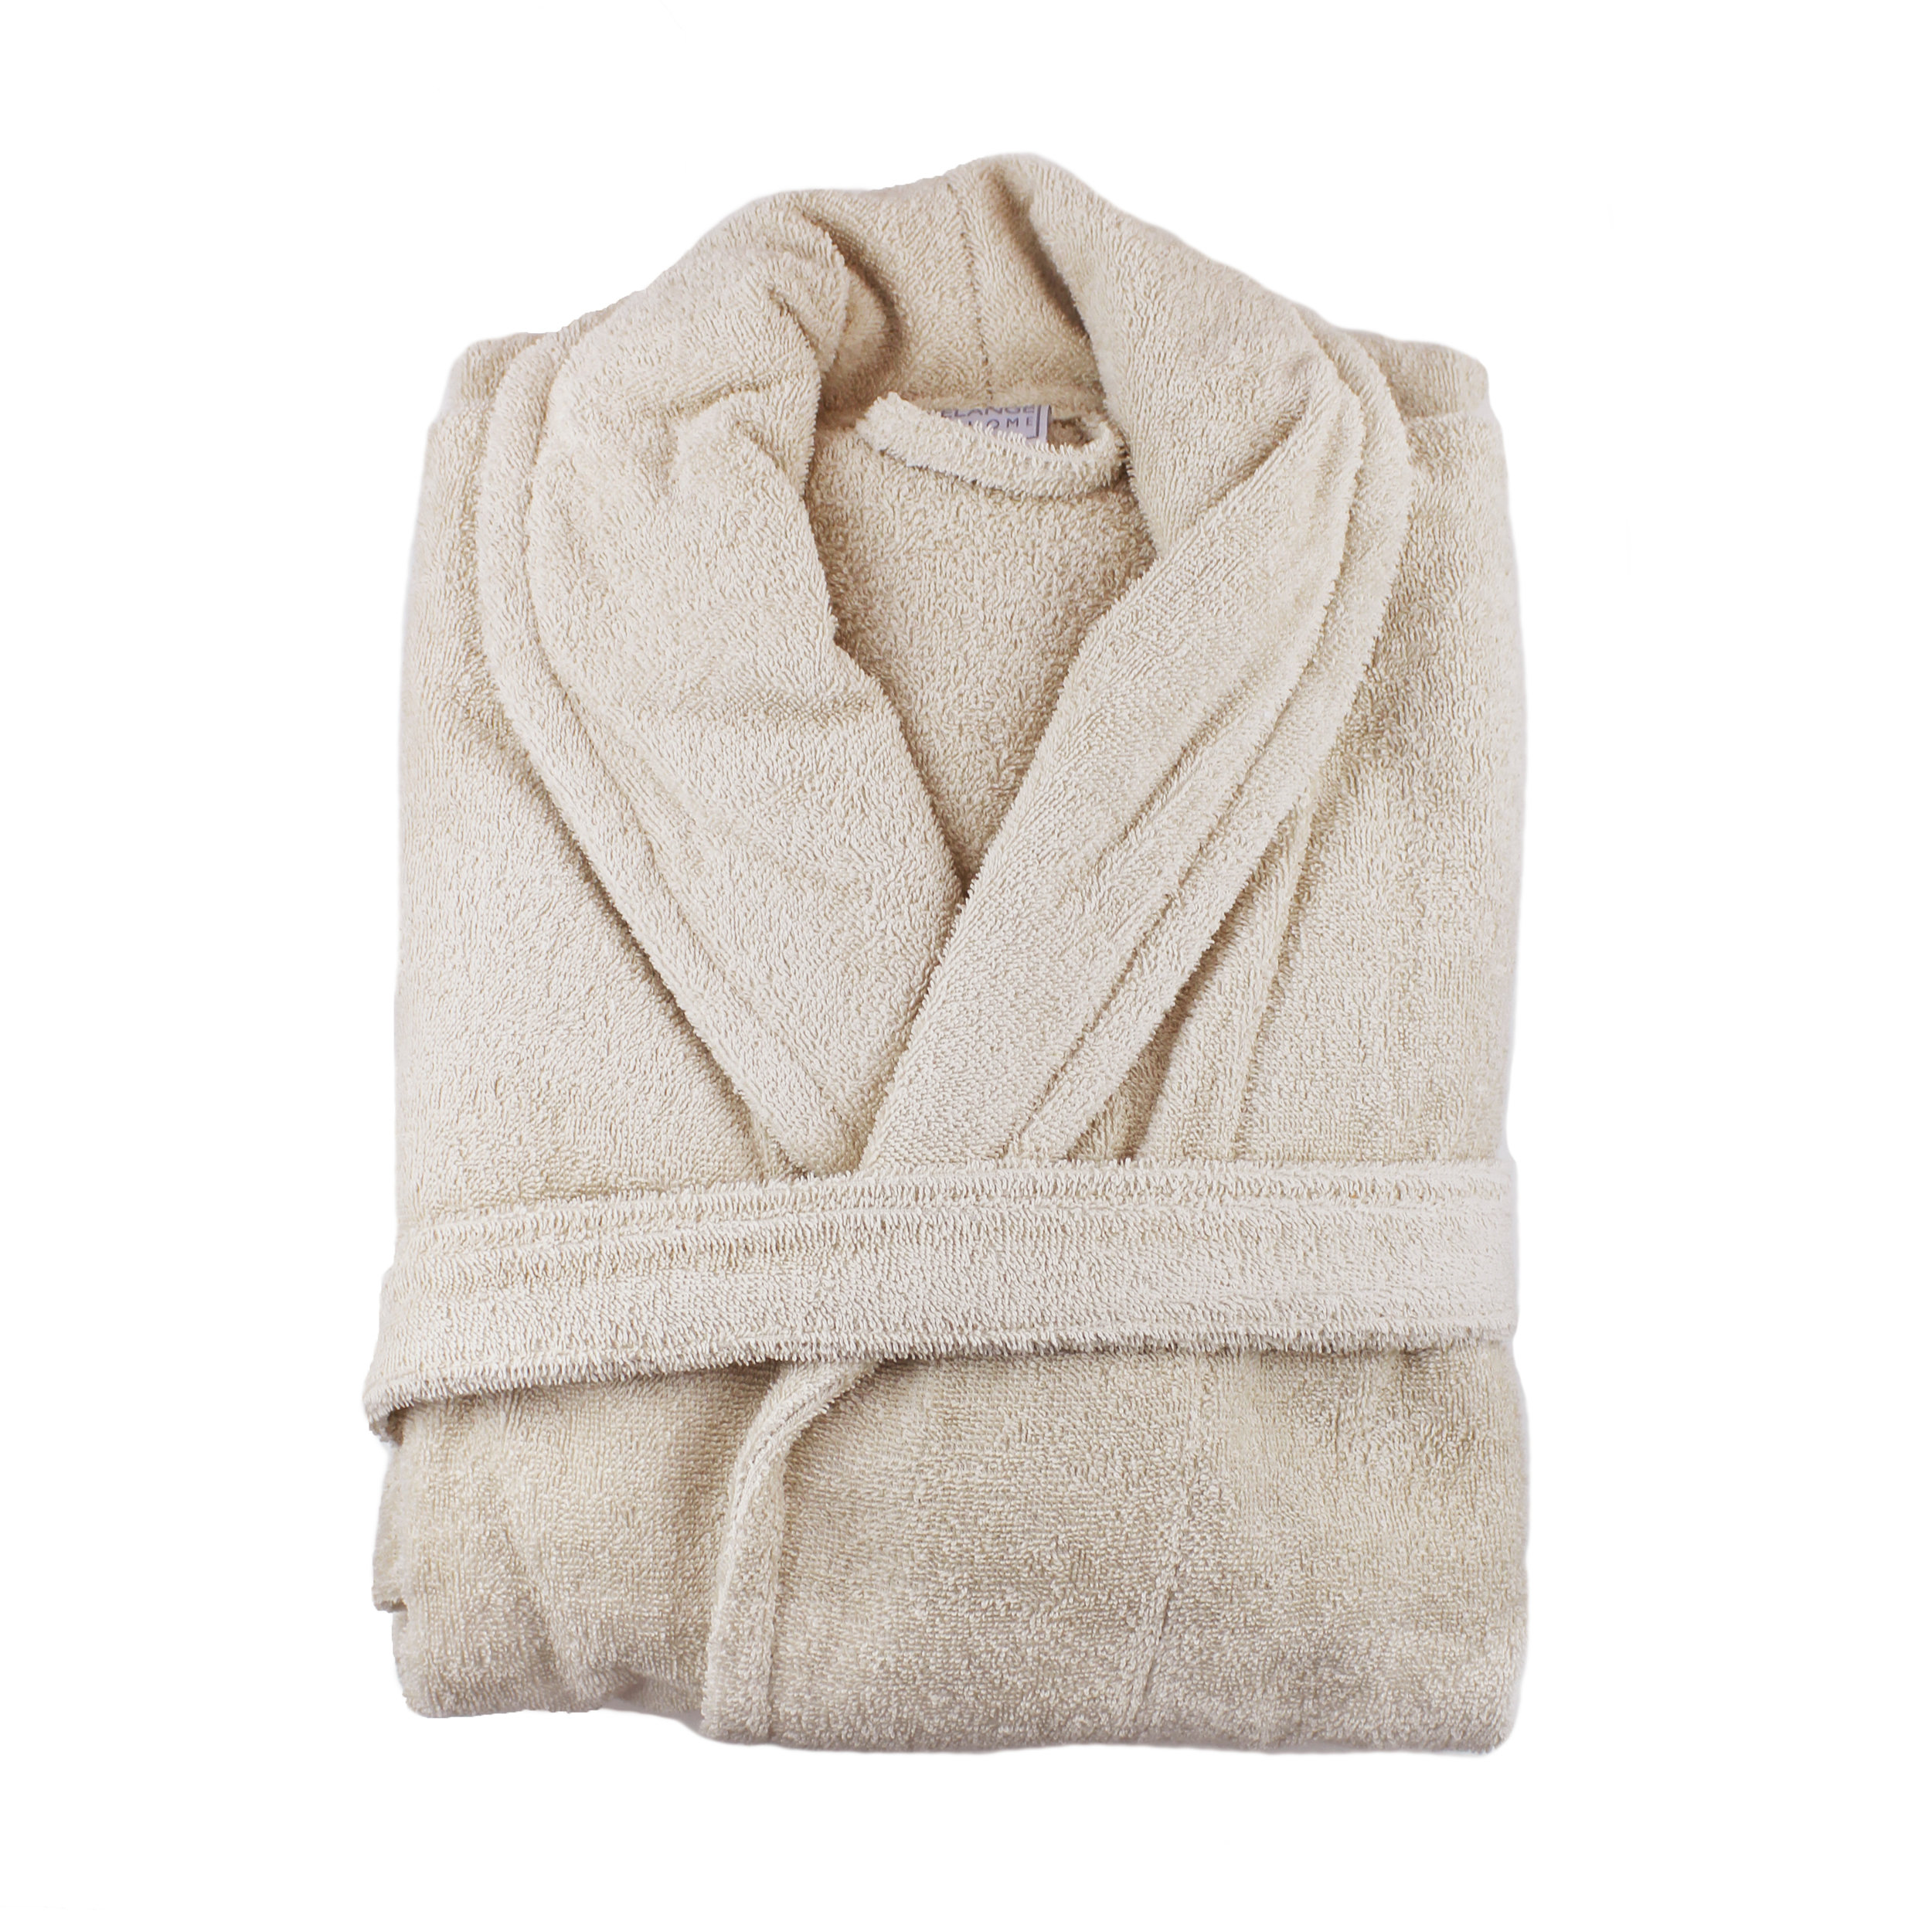 193134 Turkish Bath Robe_Taupe.jpg